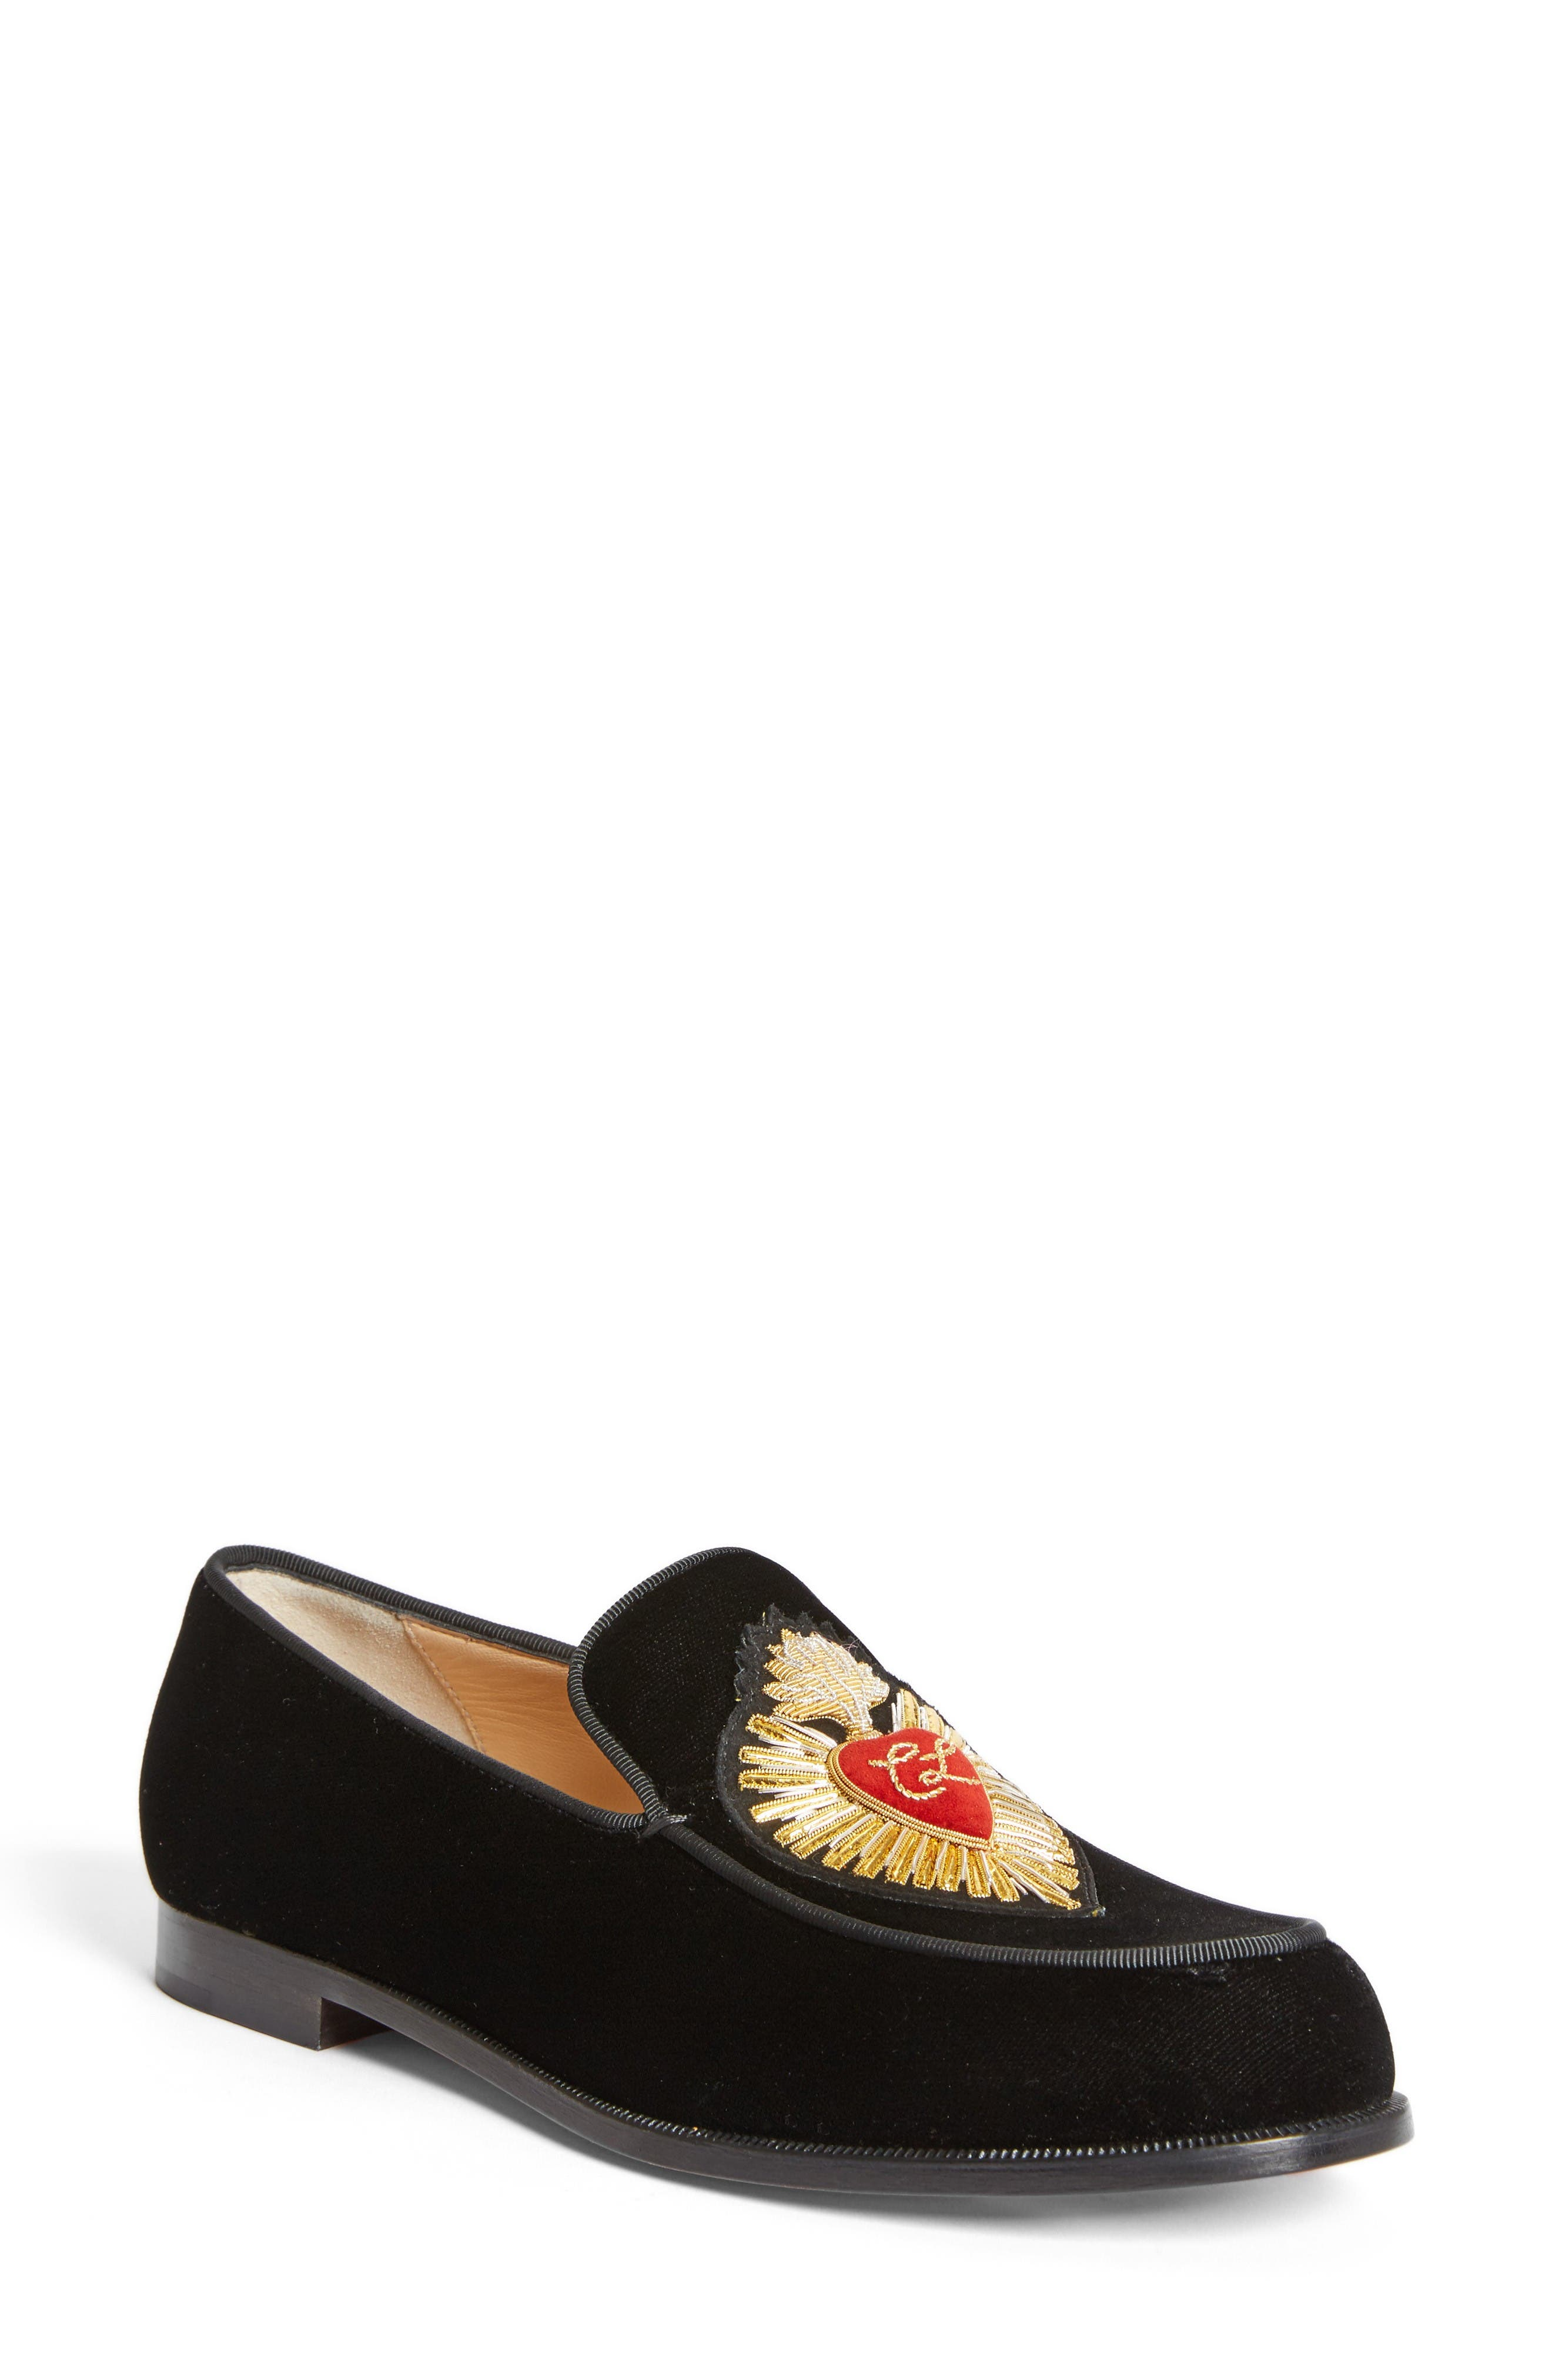 Alternate Image 1 Selected - Christian Louboutin Perou Corazon Loafer